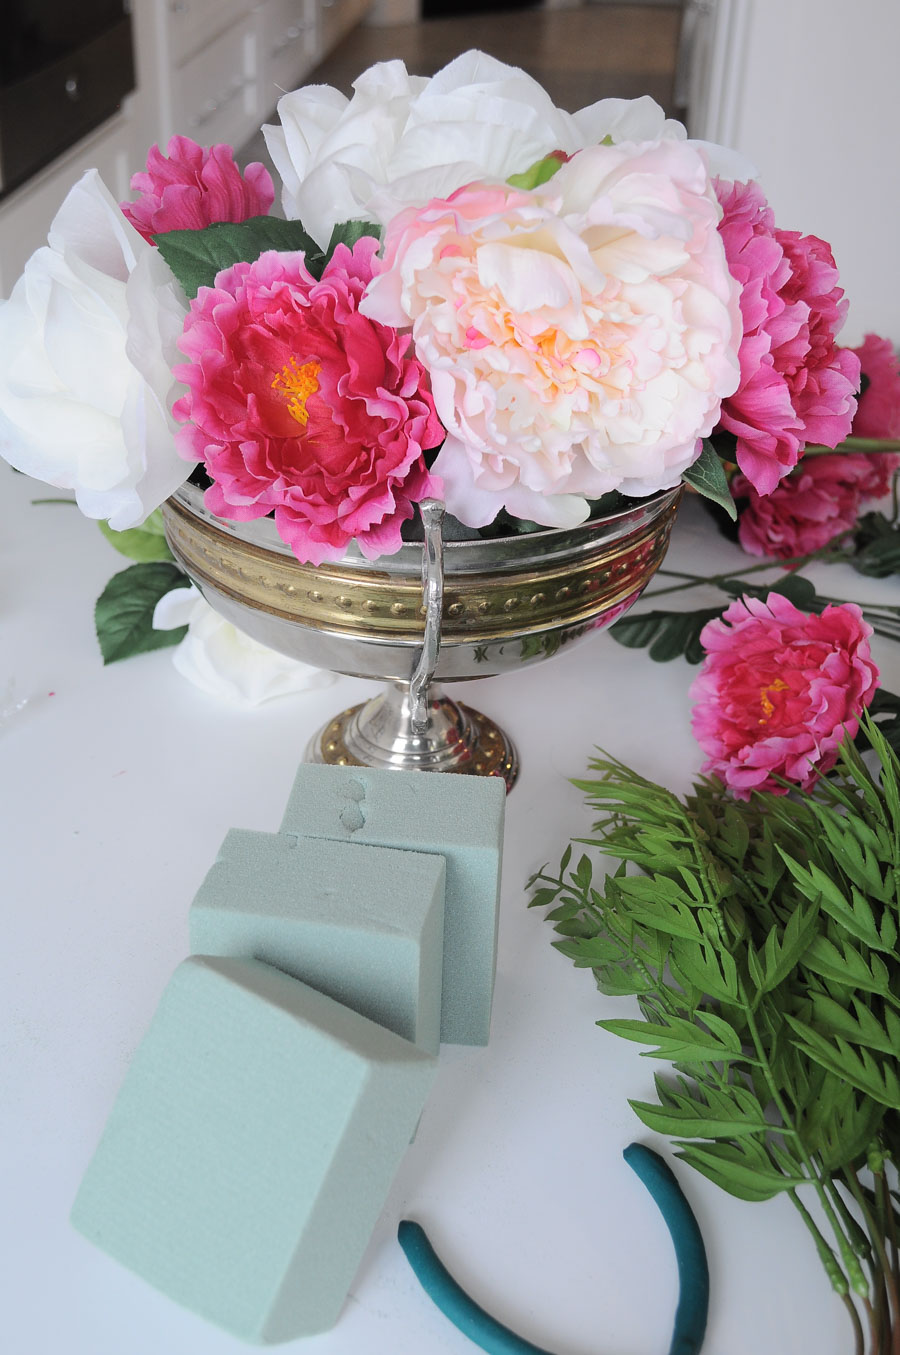 Using fake or faux florals such as peonies can make a floral arrangement look glam and luxe. Here's a DIY tutorial for how to achieve this look yourself.